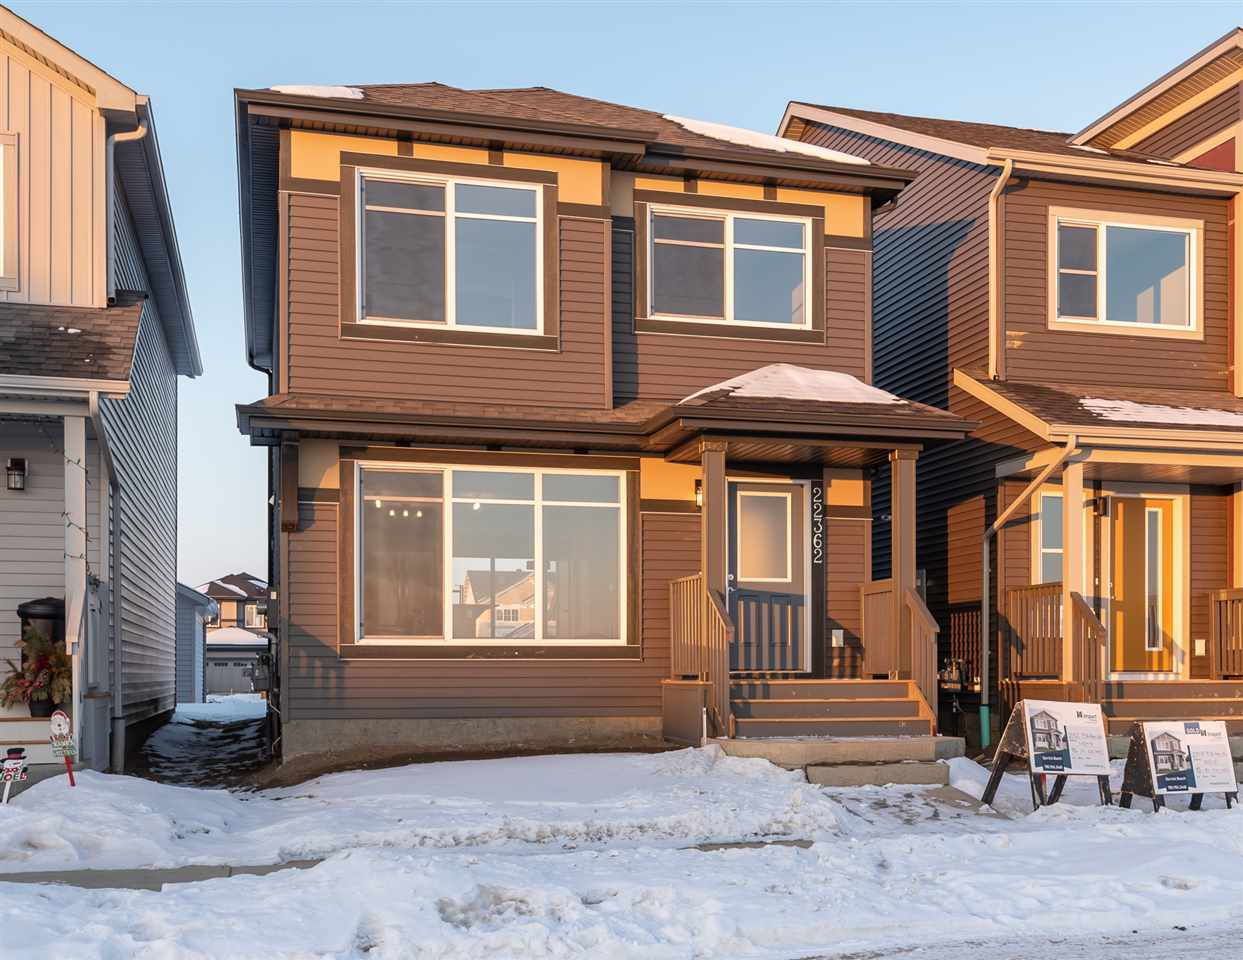 Main Photo: 22362 93A Avenue in Edmonton: Zone 58 House for sale : MLS®# E4140376